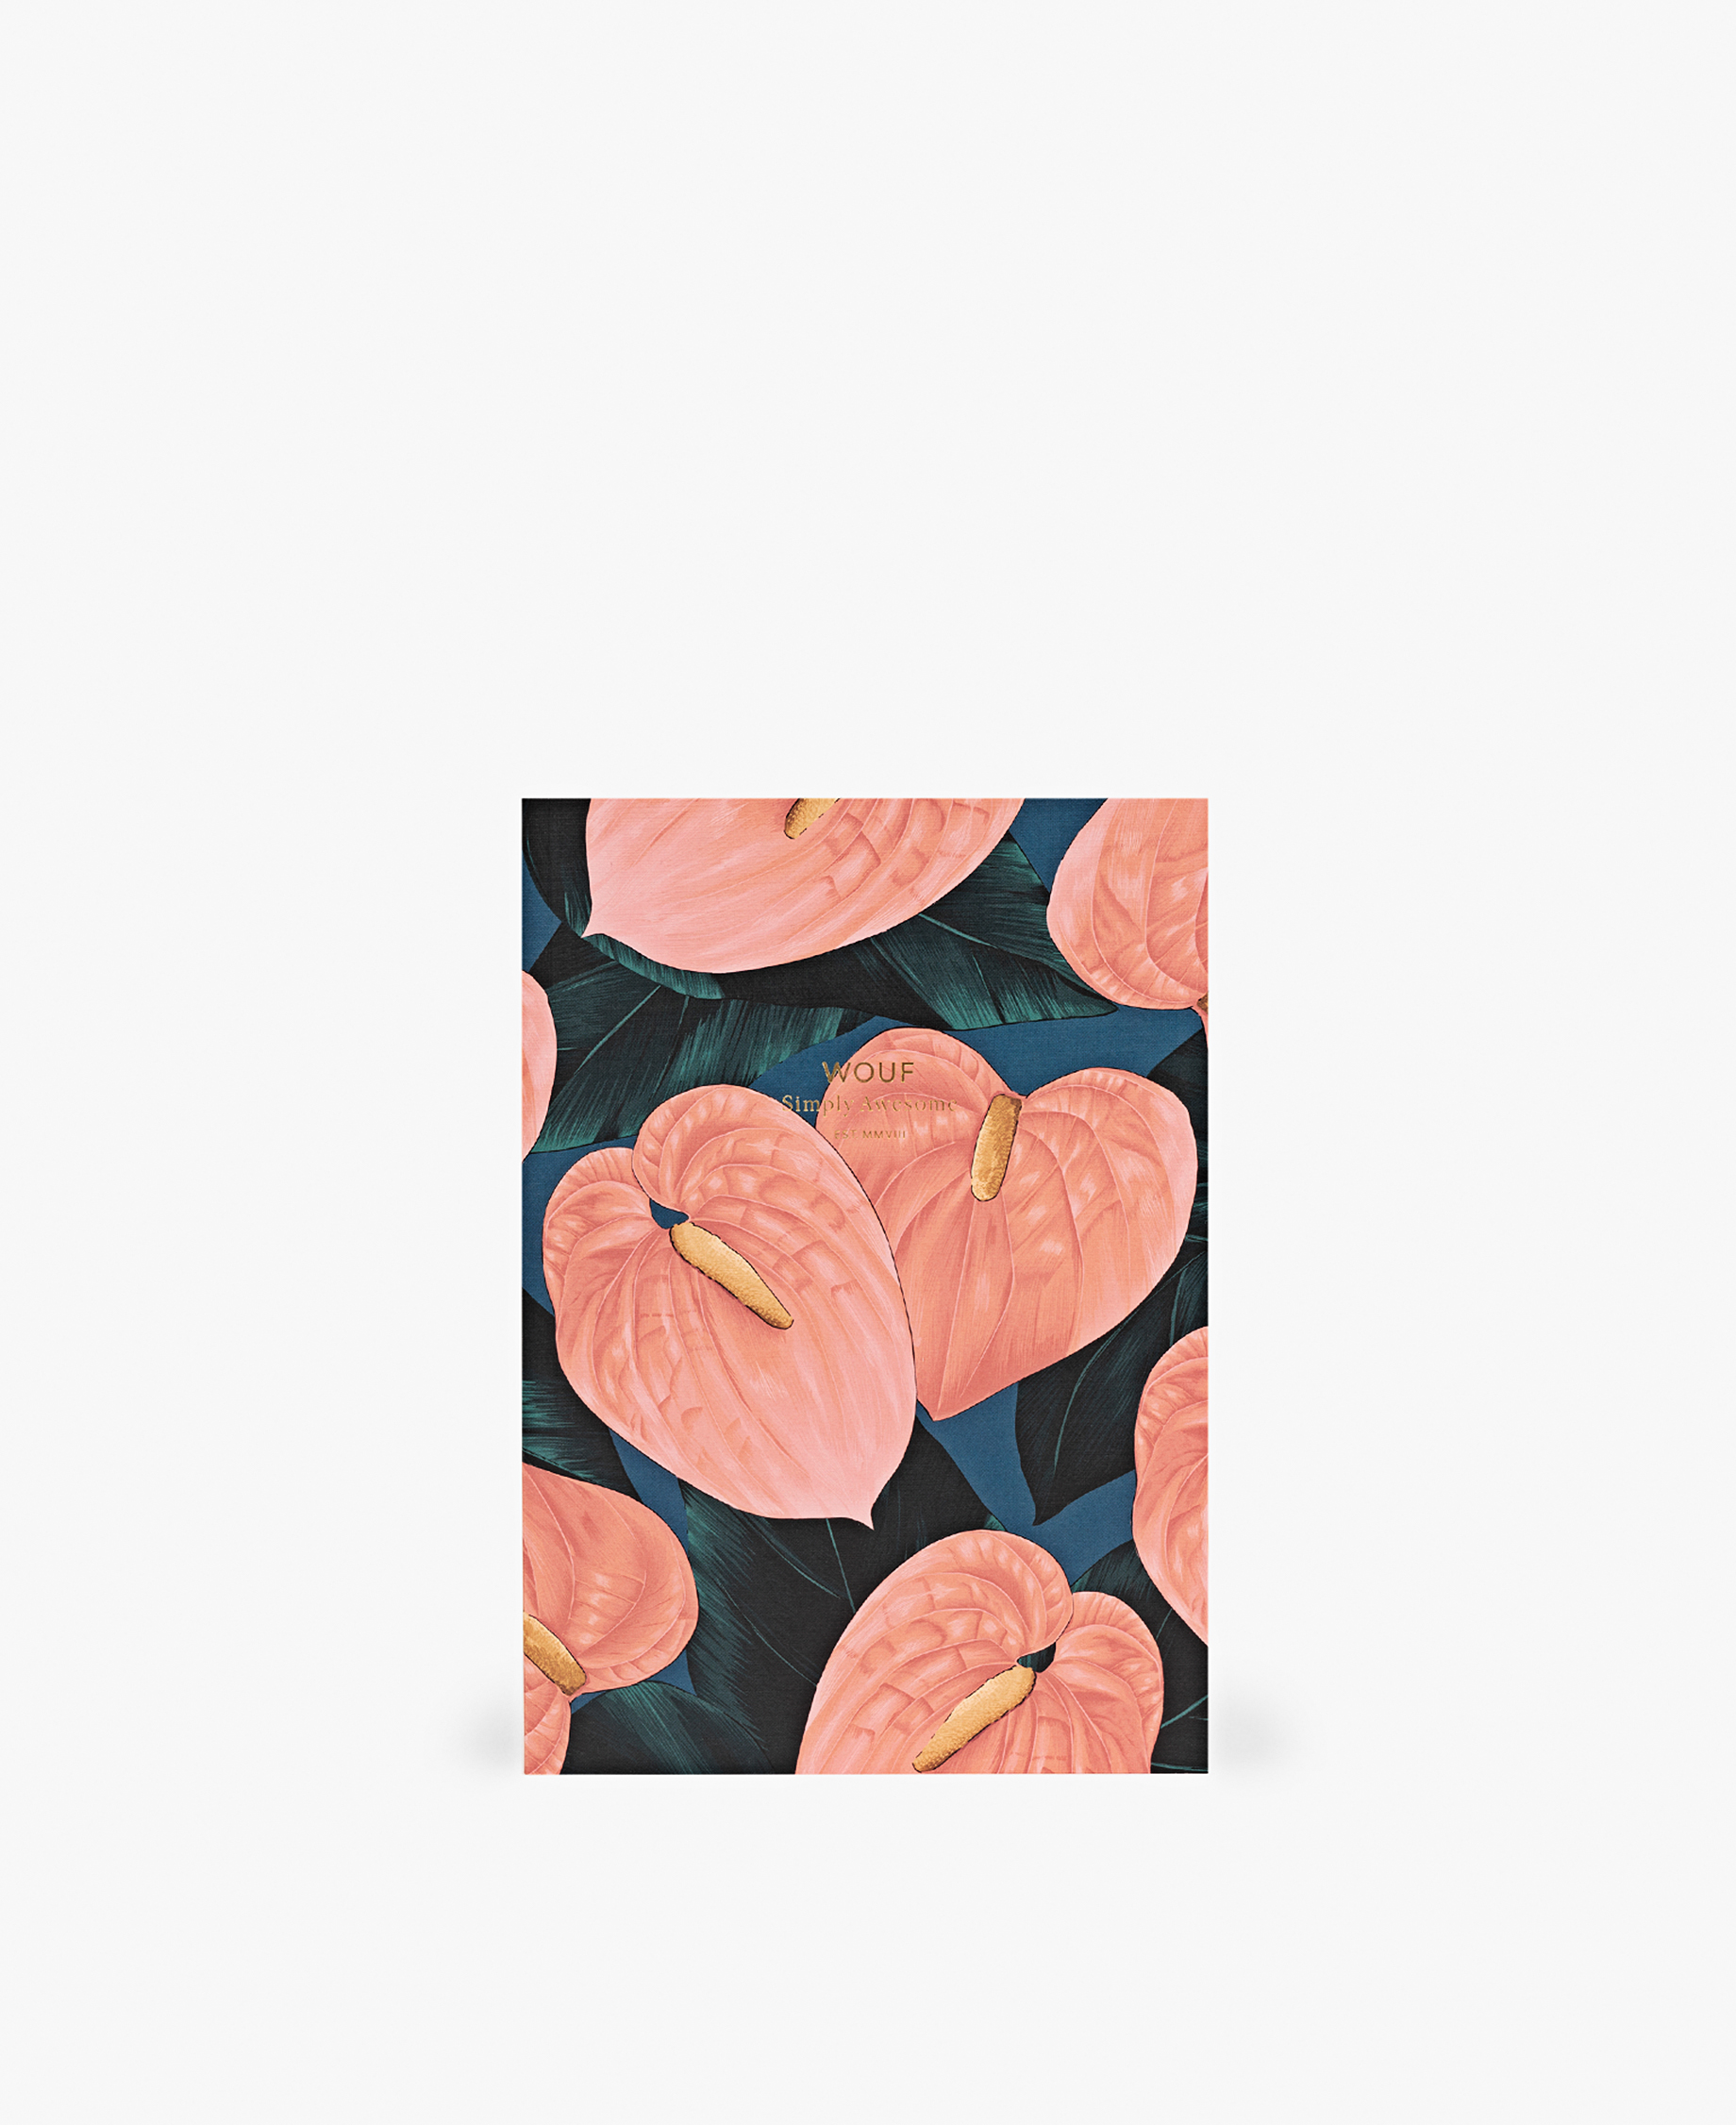 pink-lily-blue-canvas-background-A5-journal-notebook-wouf